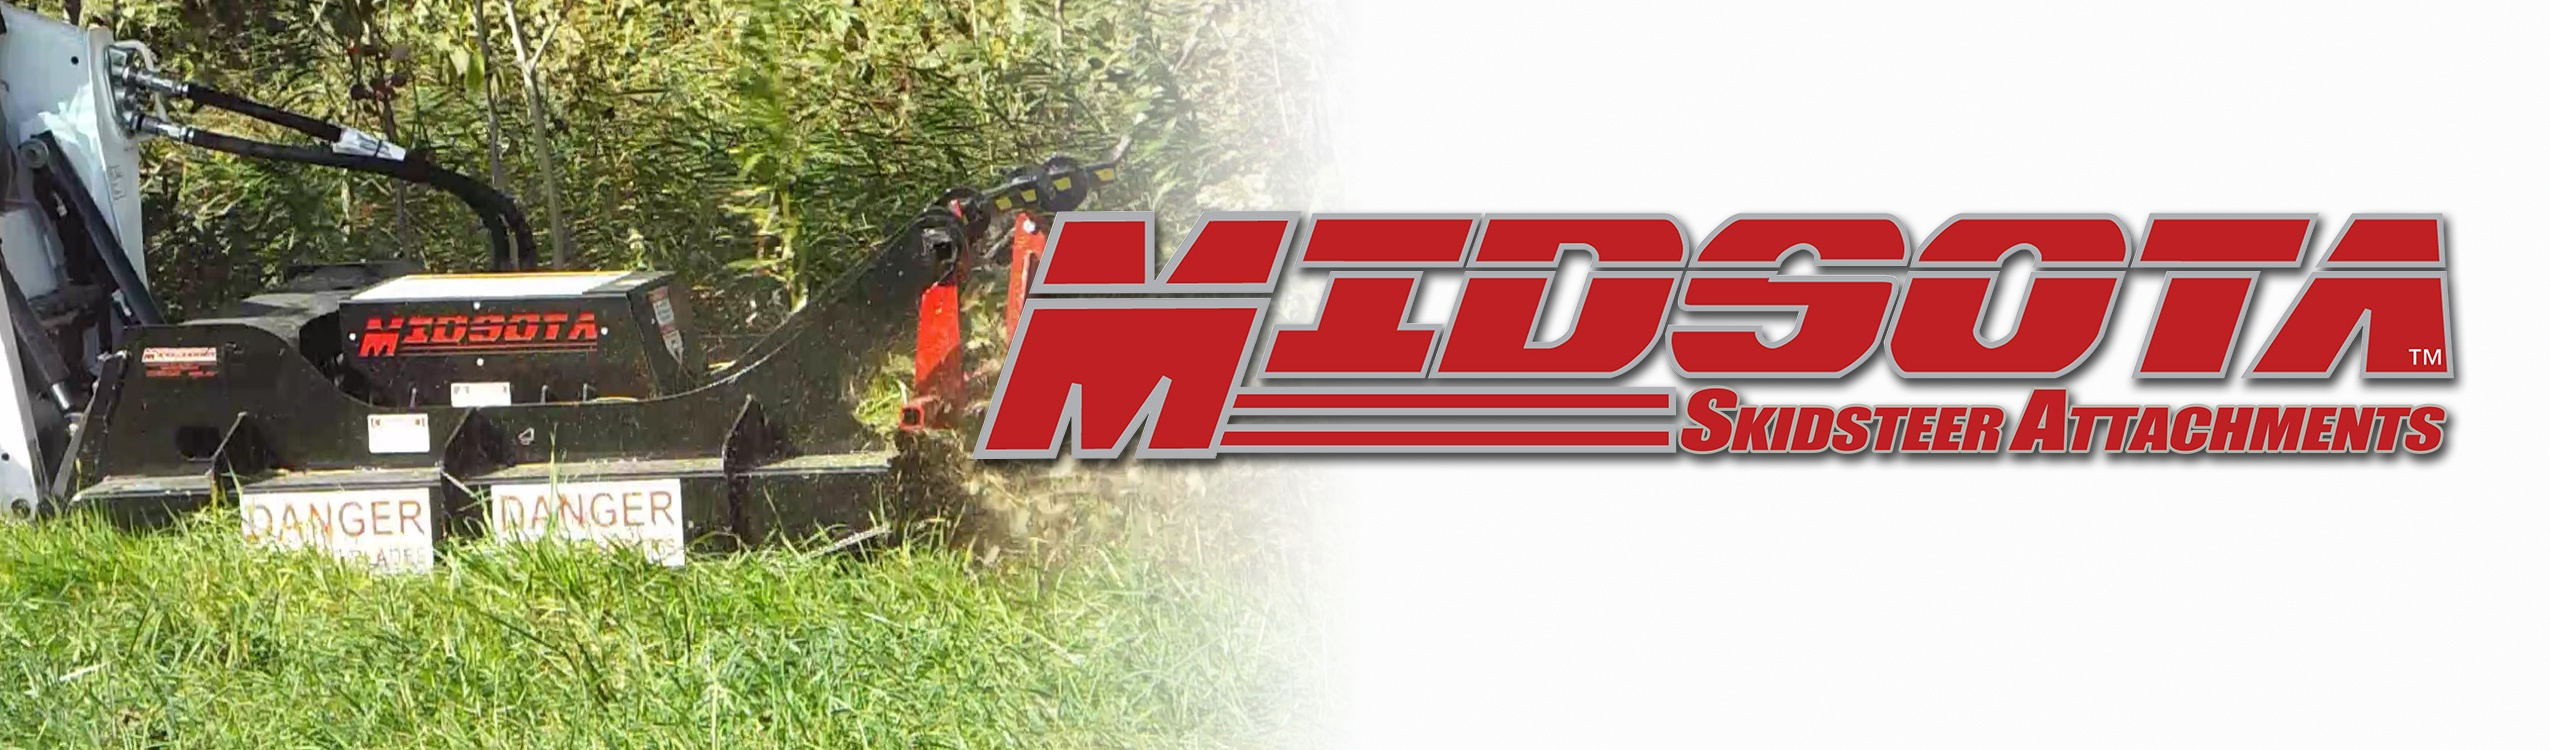 Midsota Manufacturing Skidsteer Landscaping Attachments